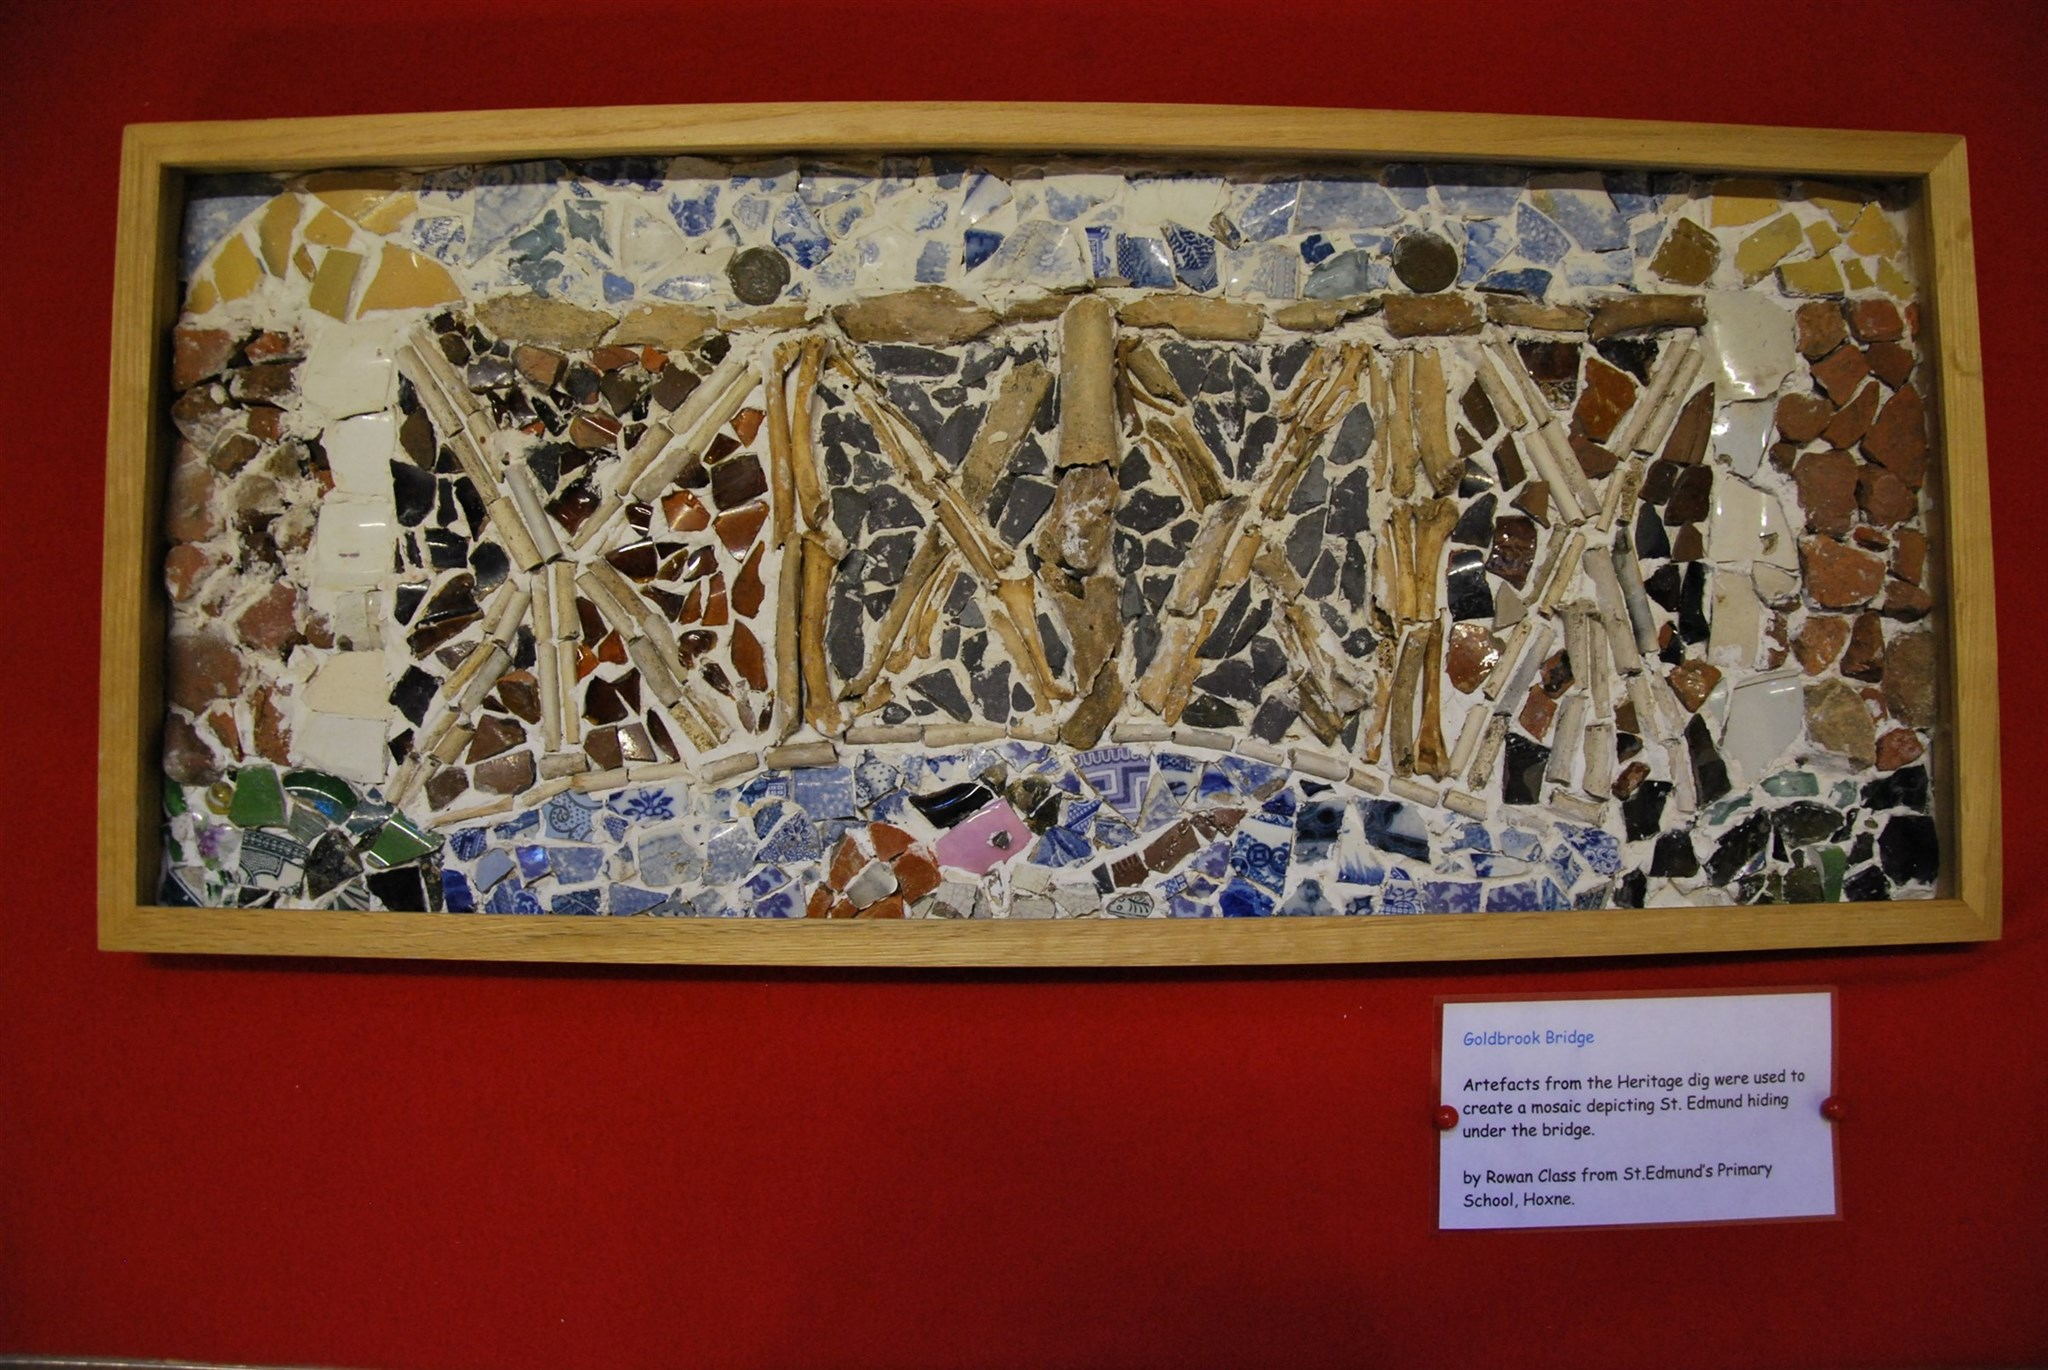 Mosaic depicting the legend of St Edmund hiding under Goldbrook Bridge, Hoxne, created by Hoxne schoolchildren using finds from their test pits